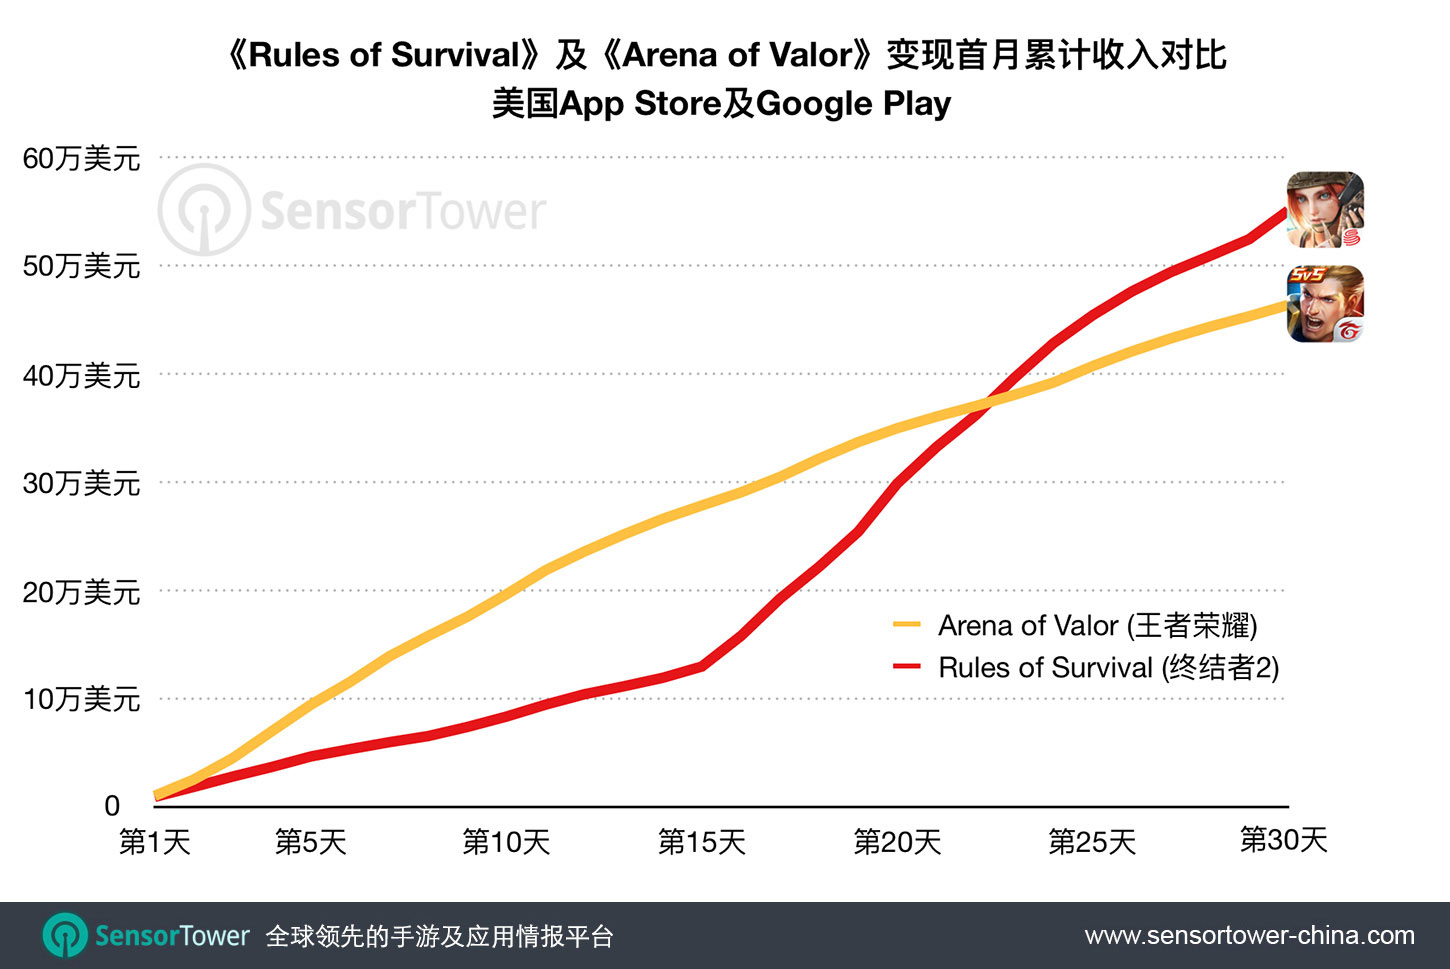 Rules of Survival & Arena of Valor First-Month Cumulative U.S. Revenue